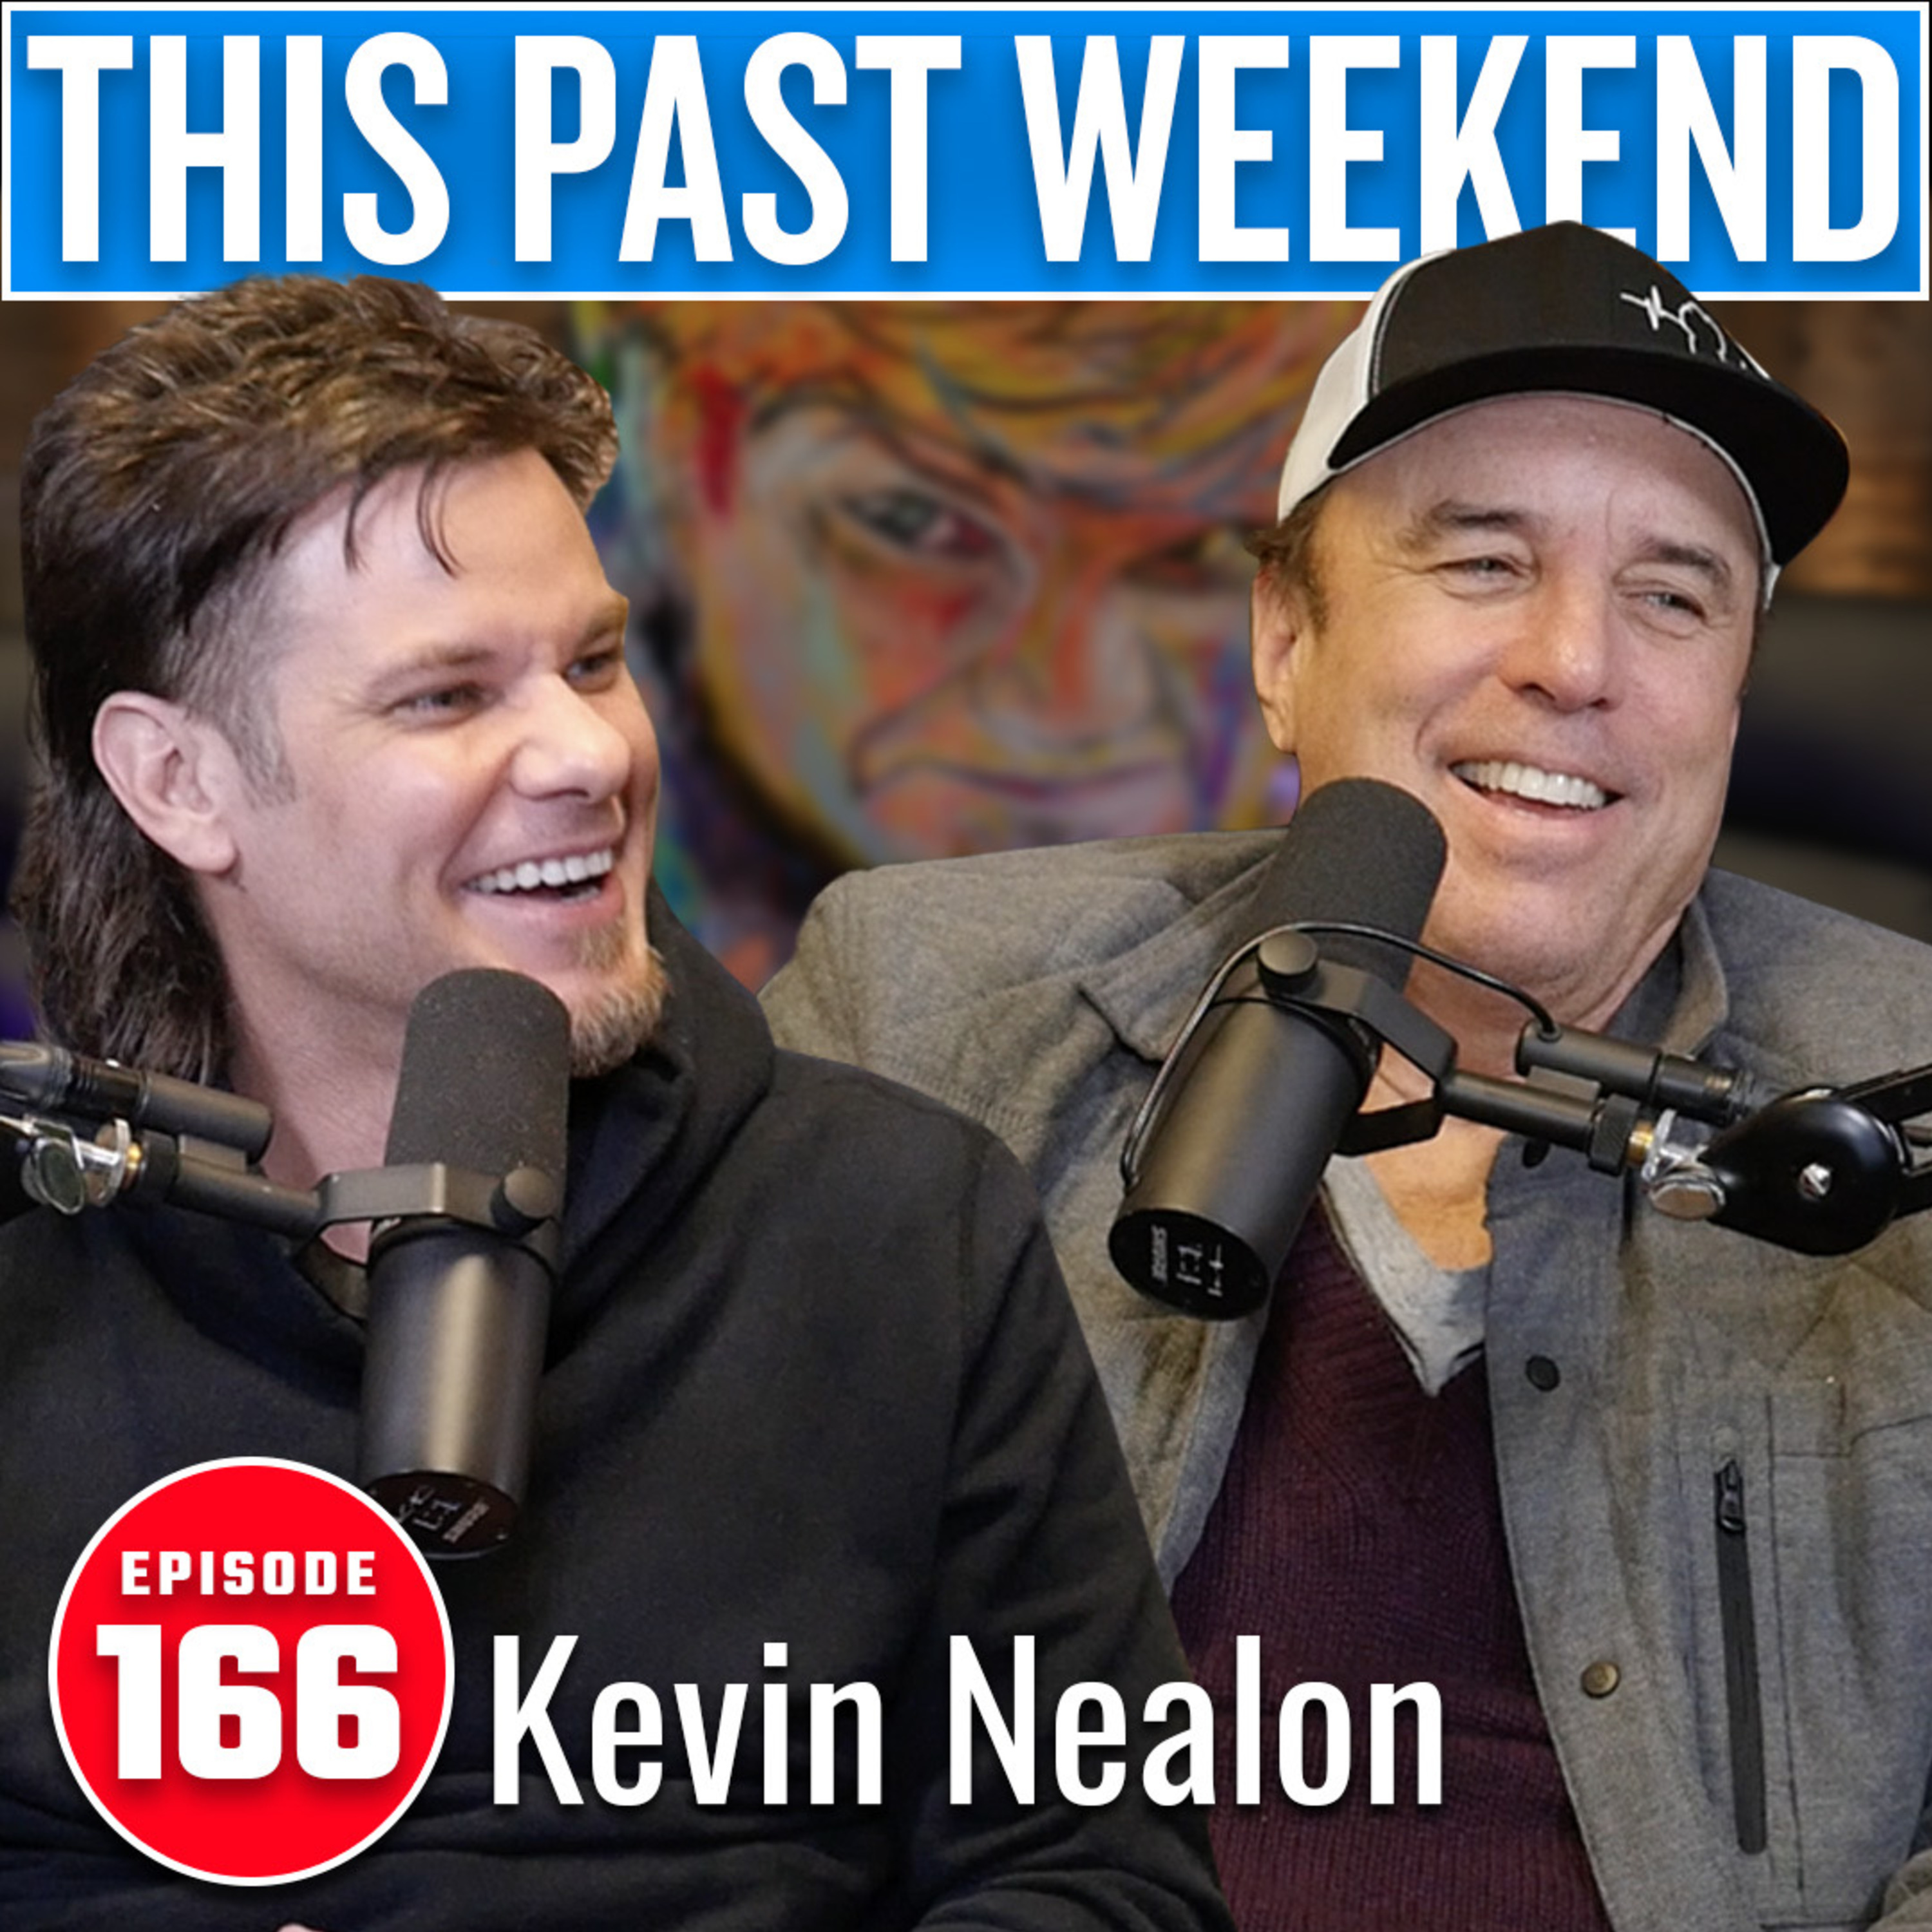 Kevin Nealon | This Past Weekend #166